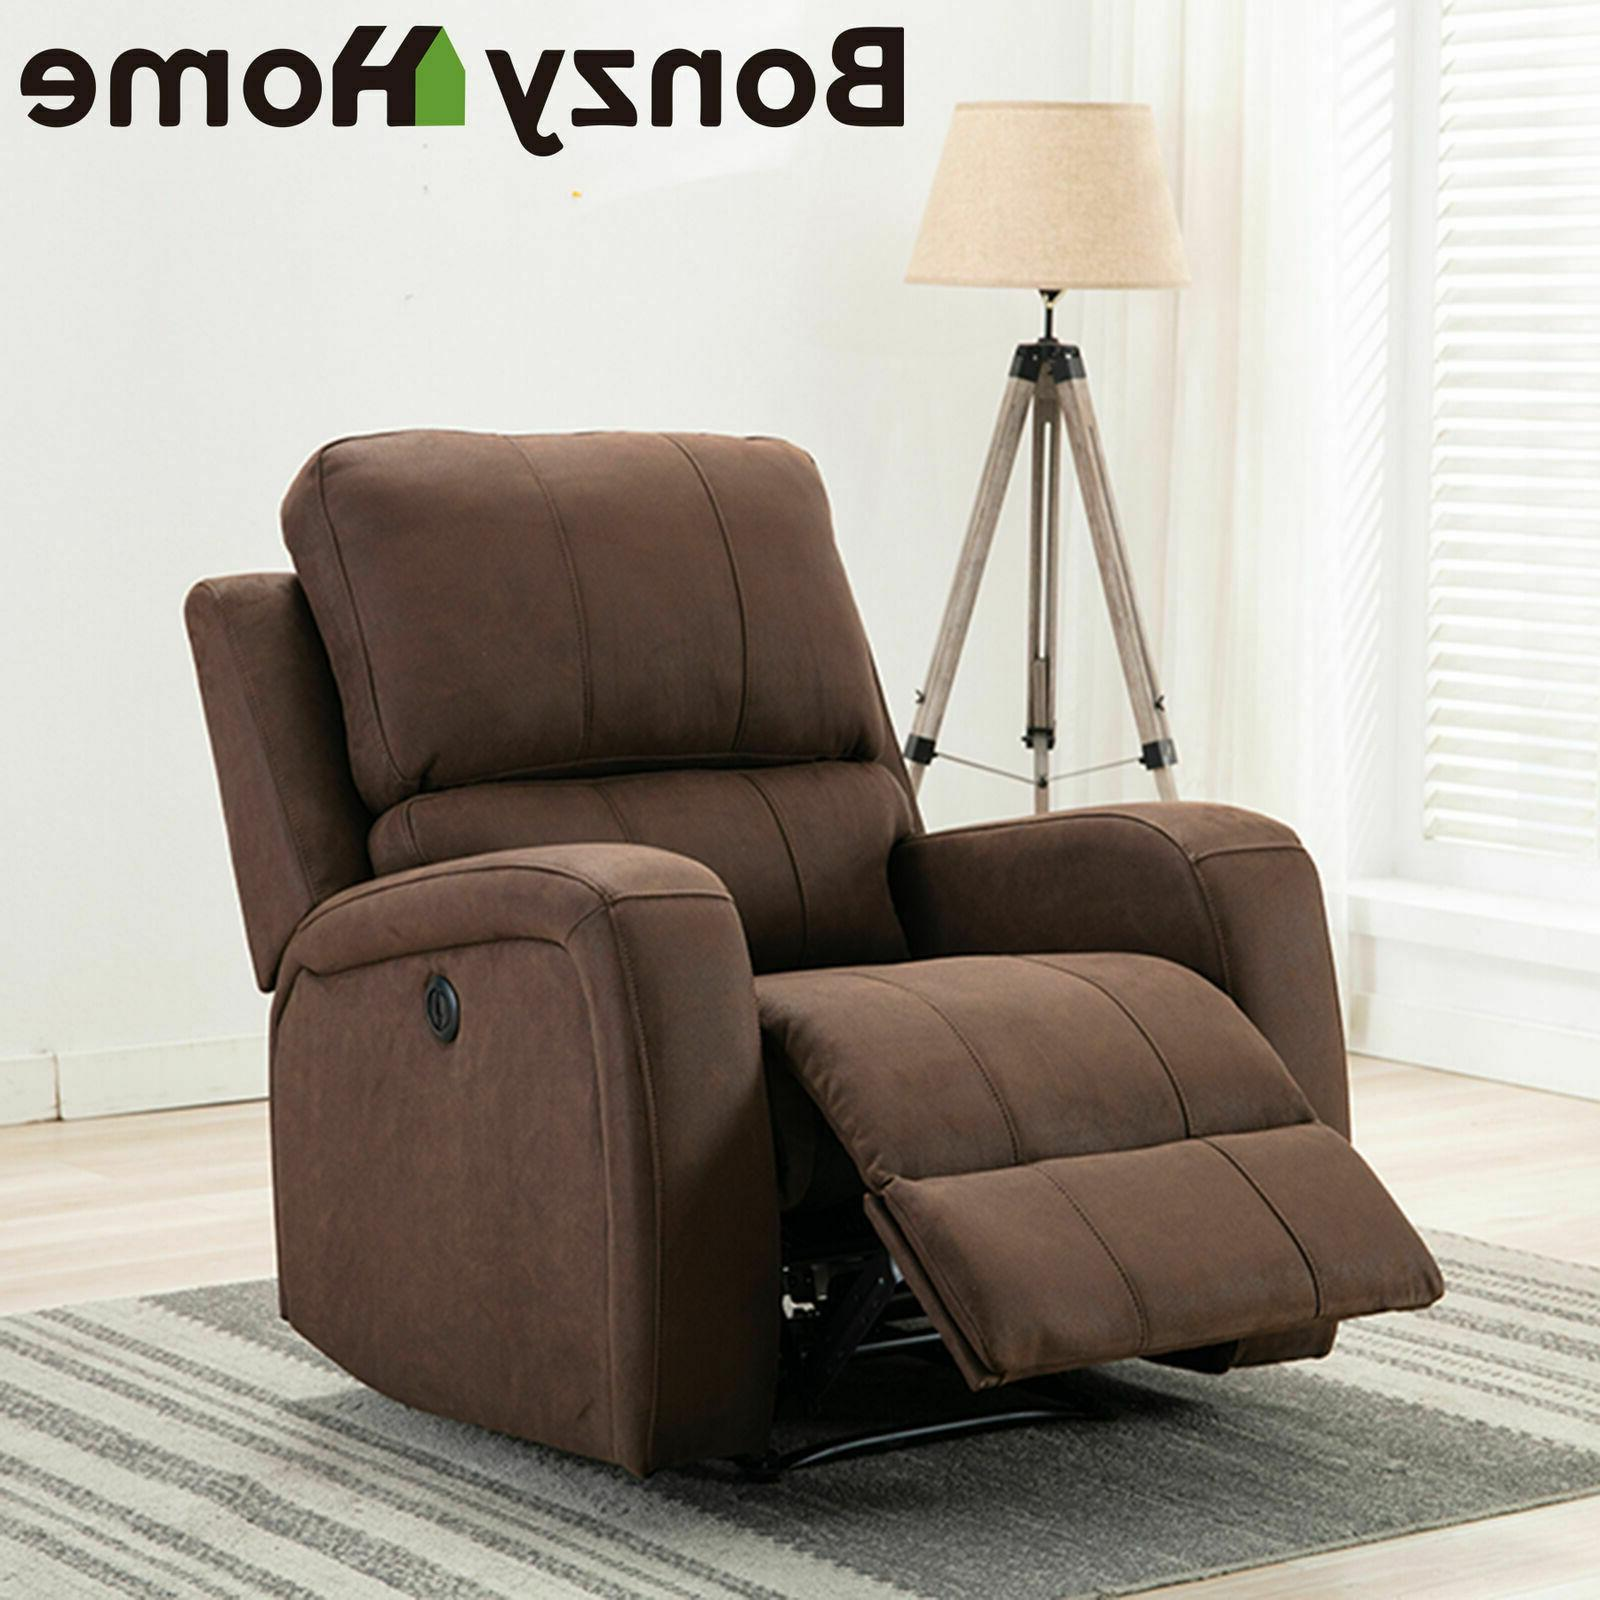 RECLINER CHAIR ELECTRIC POWER FURNITURE NEW